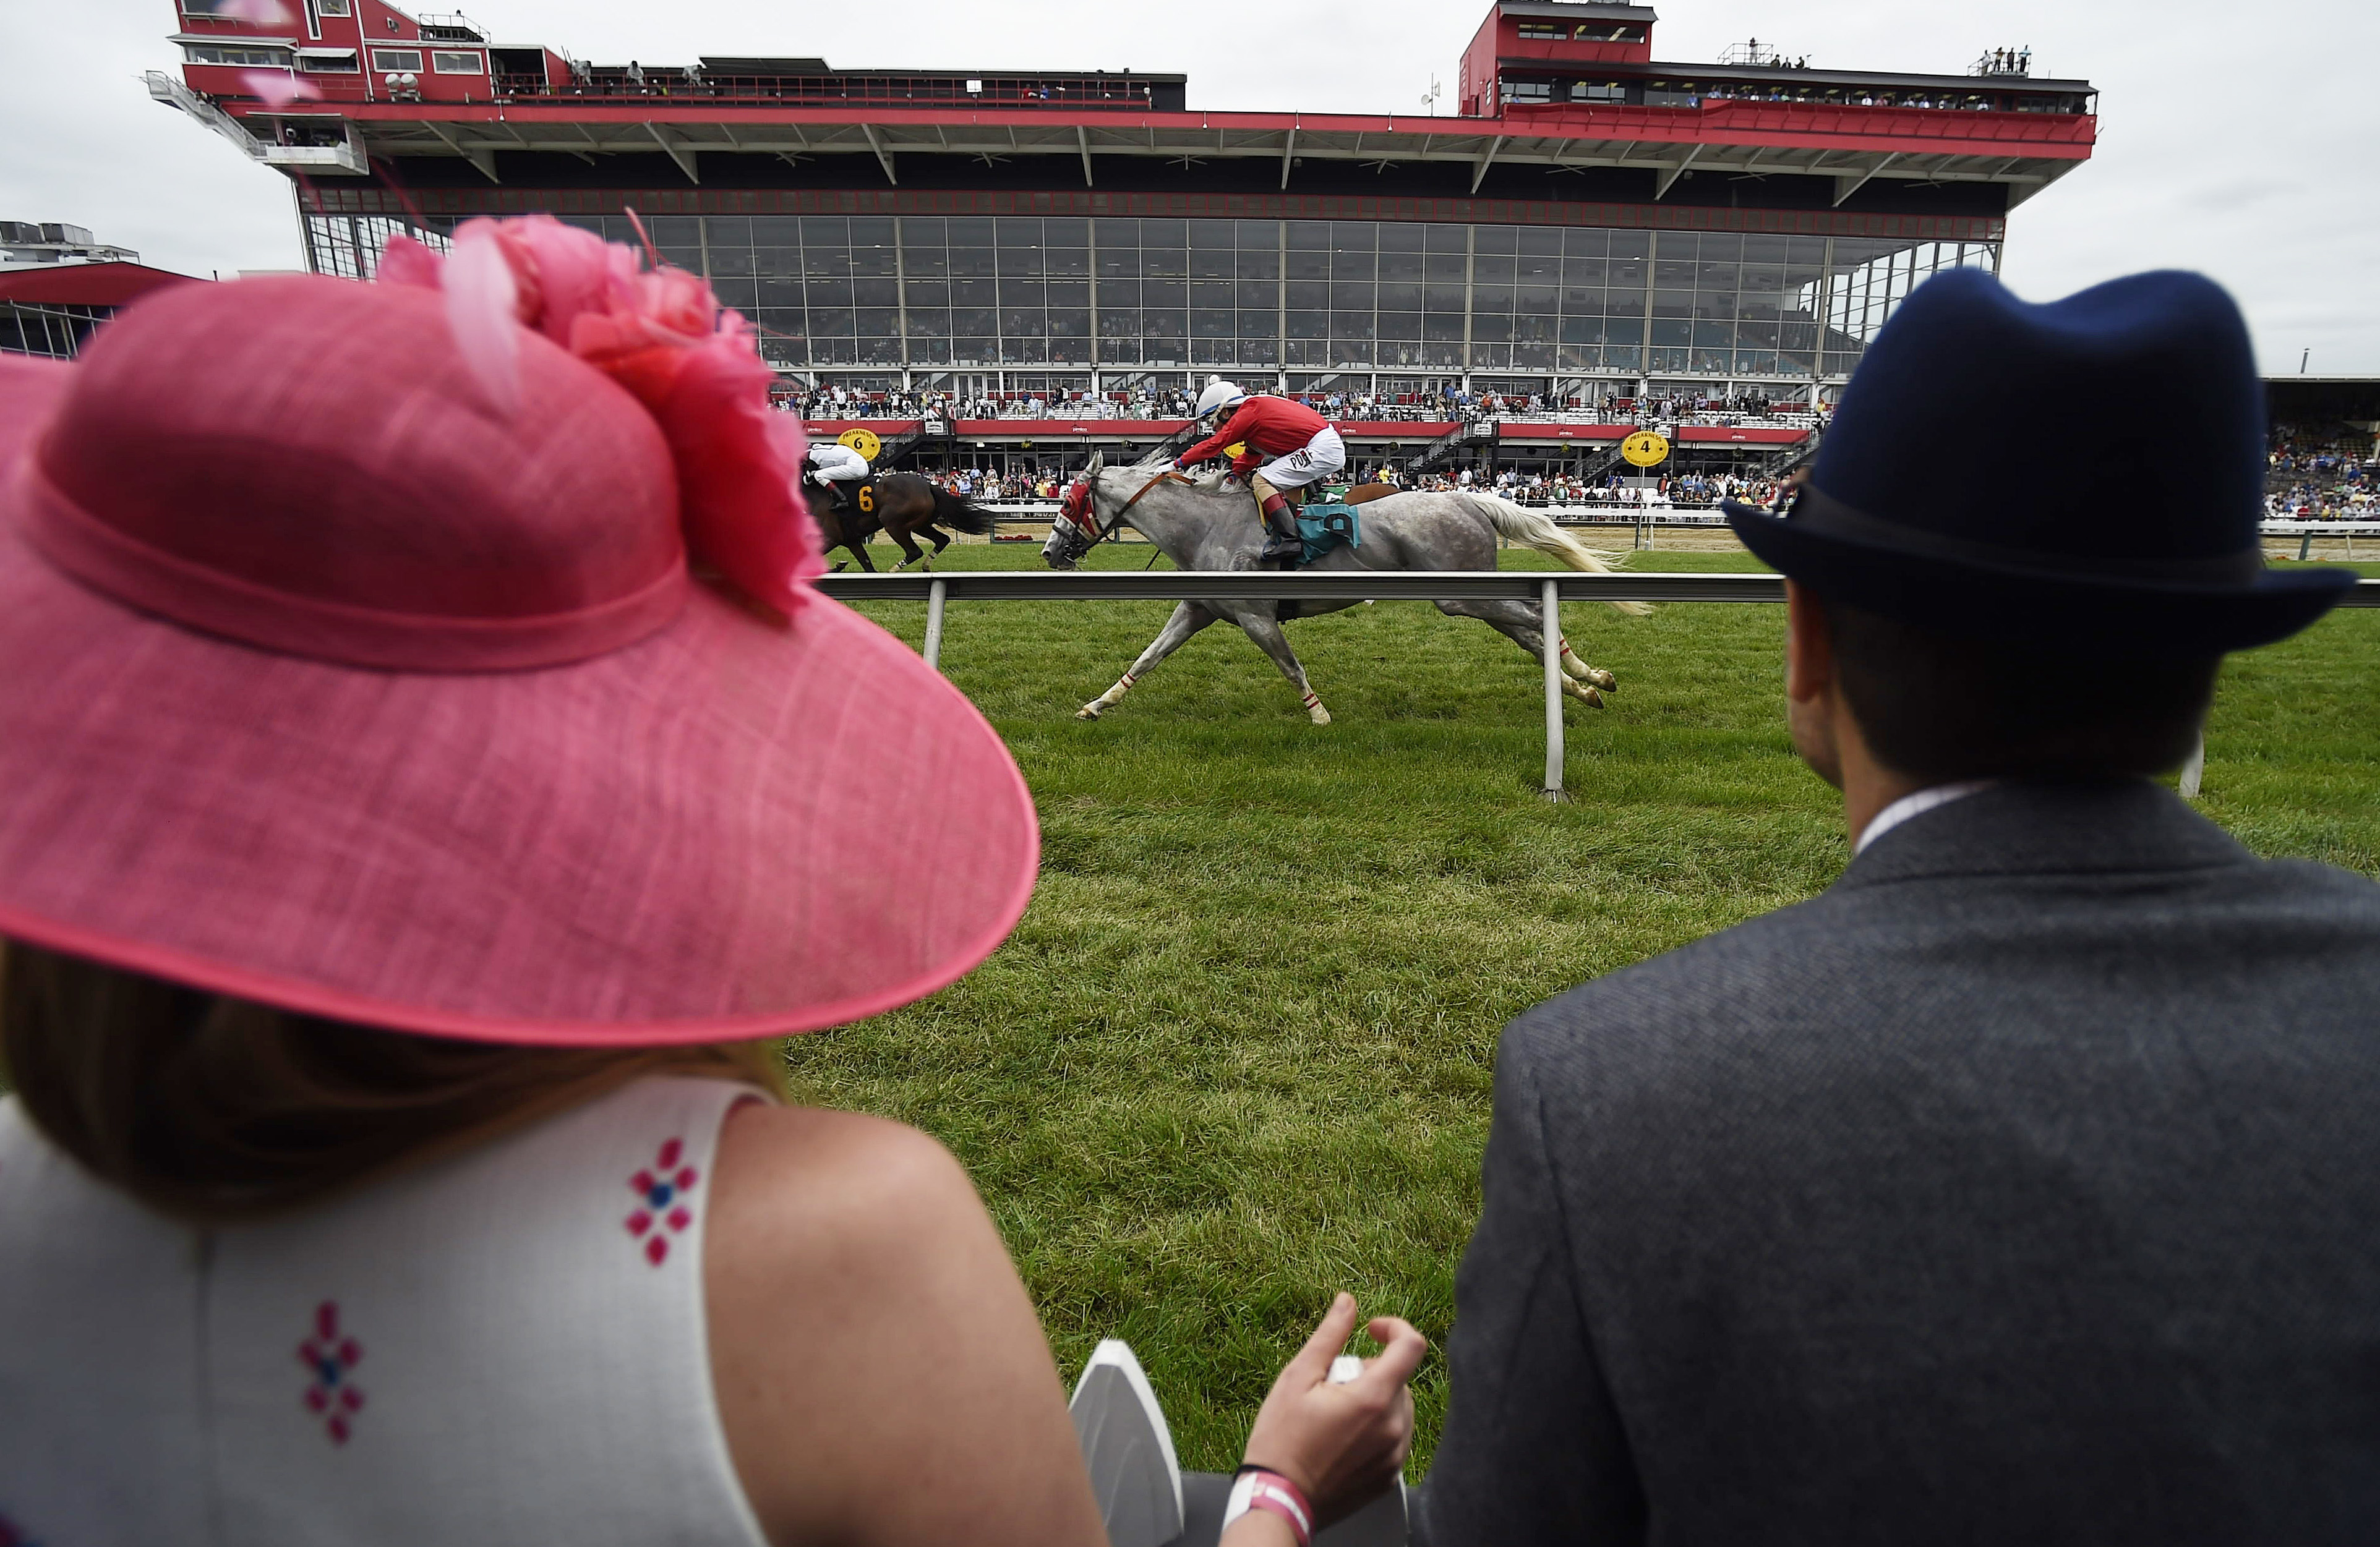 Katie Crammer and Zach Crammer of Maryland, watch the third race at the track ahead of the running of the Preakness Stakes horse race at Pimlico race course, Saturday, May 20, 2017, in Baltimore. The 142nd Preakness Stakes horse race runs Saturday. (AP Ph